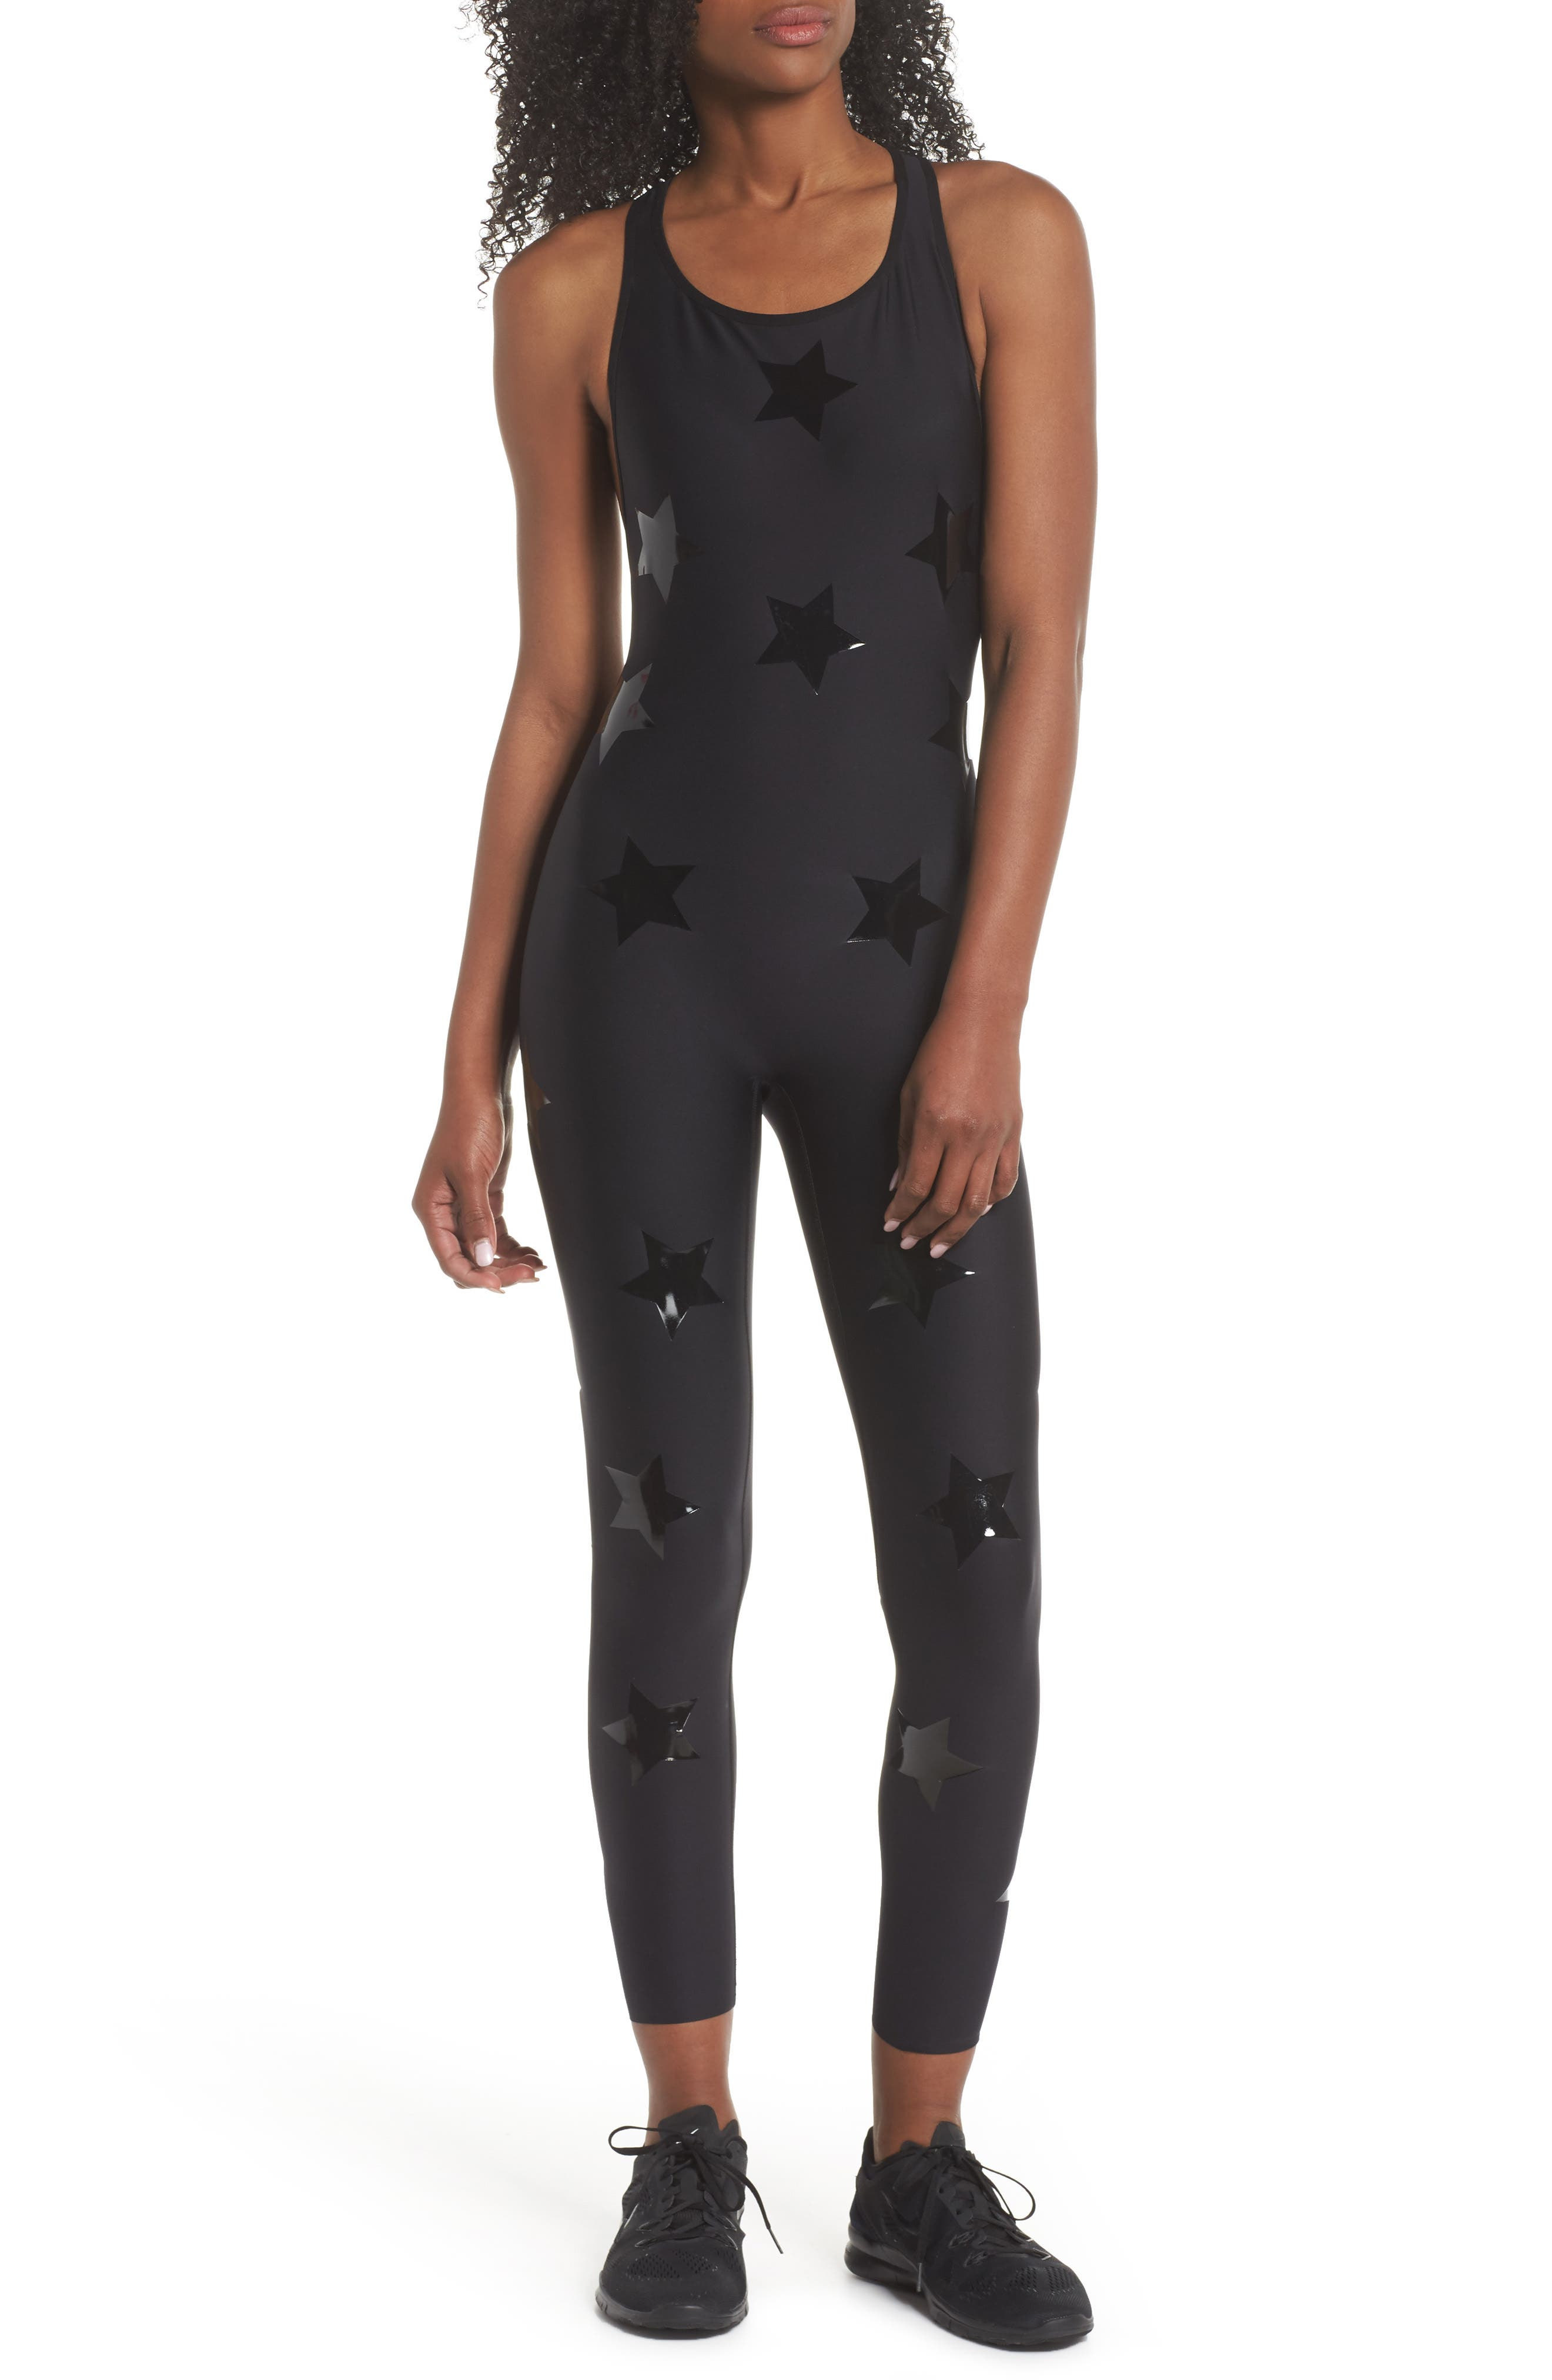 Motion Lux Knockout Unitard,                             Main thumbnail 1, color,                             002